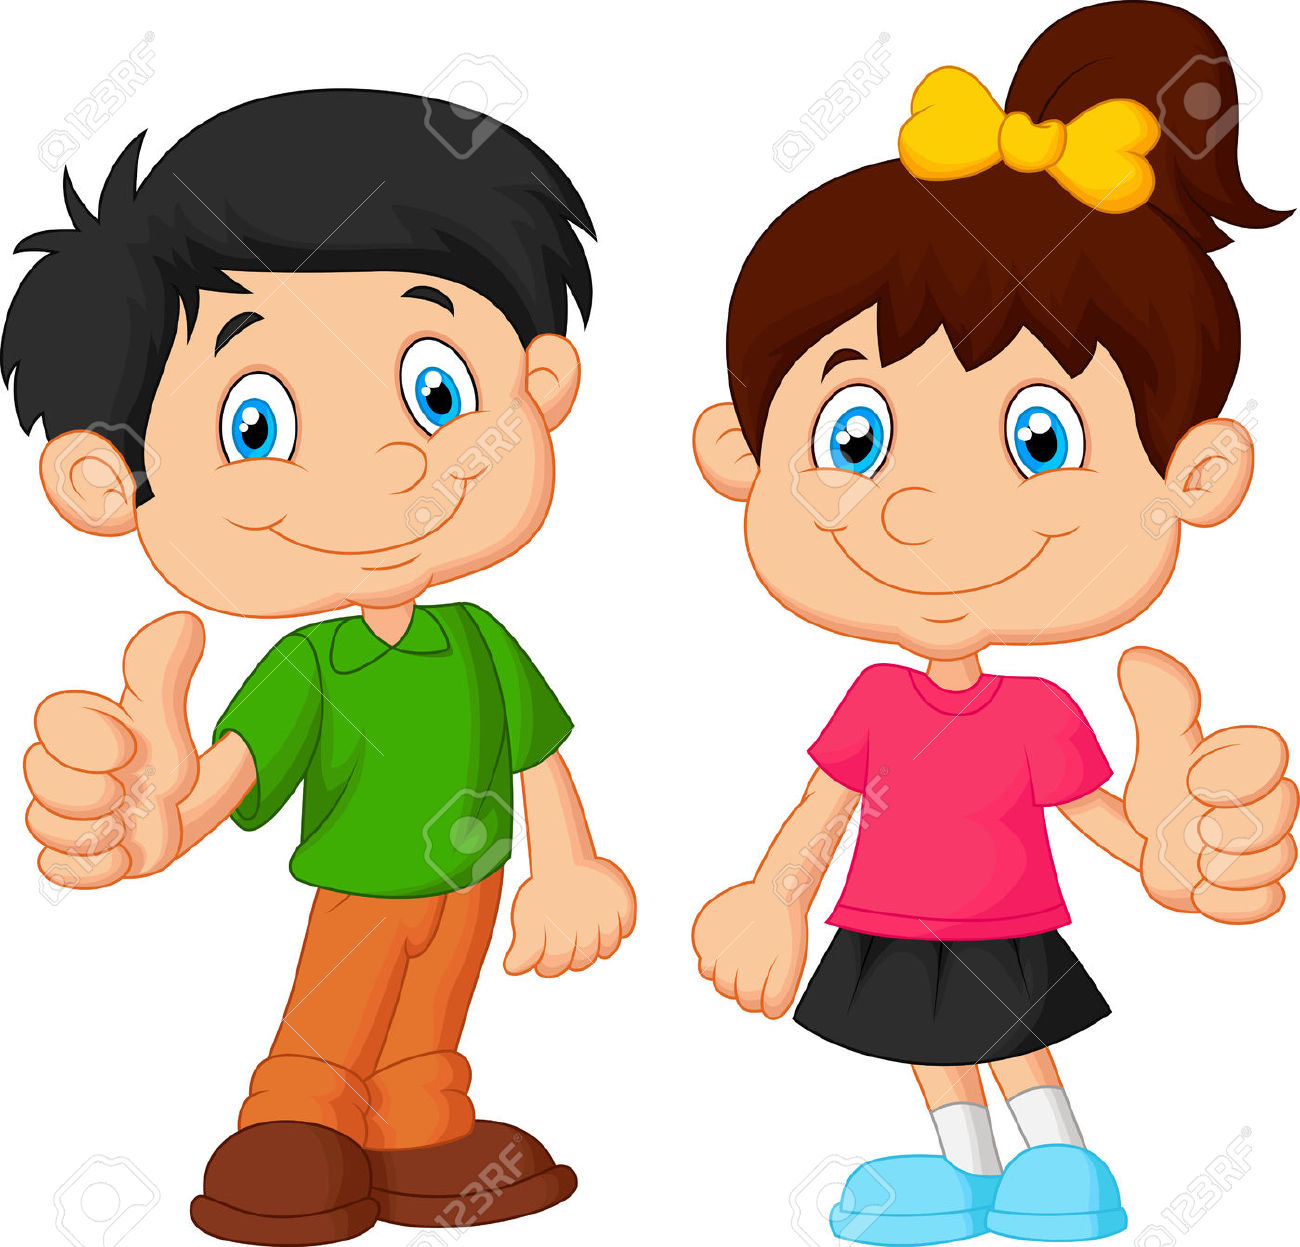 Boy clipart thumbs up Thumbs woman Girl up clipart